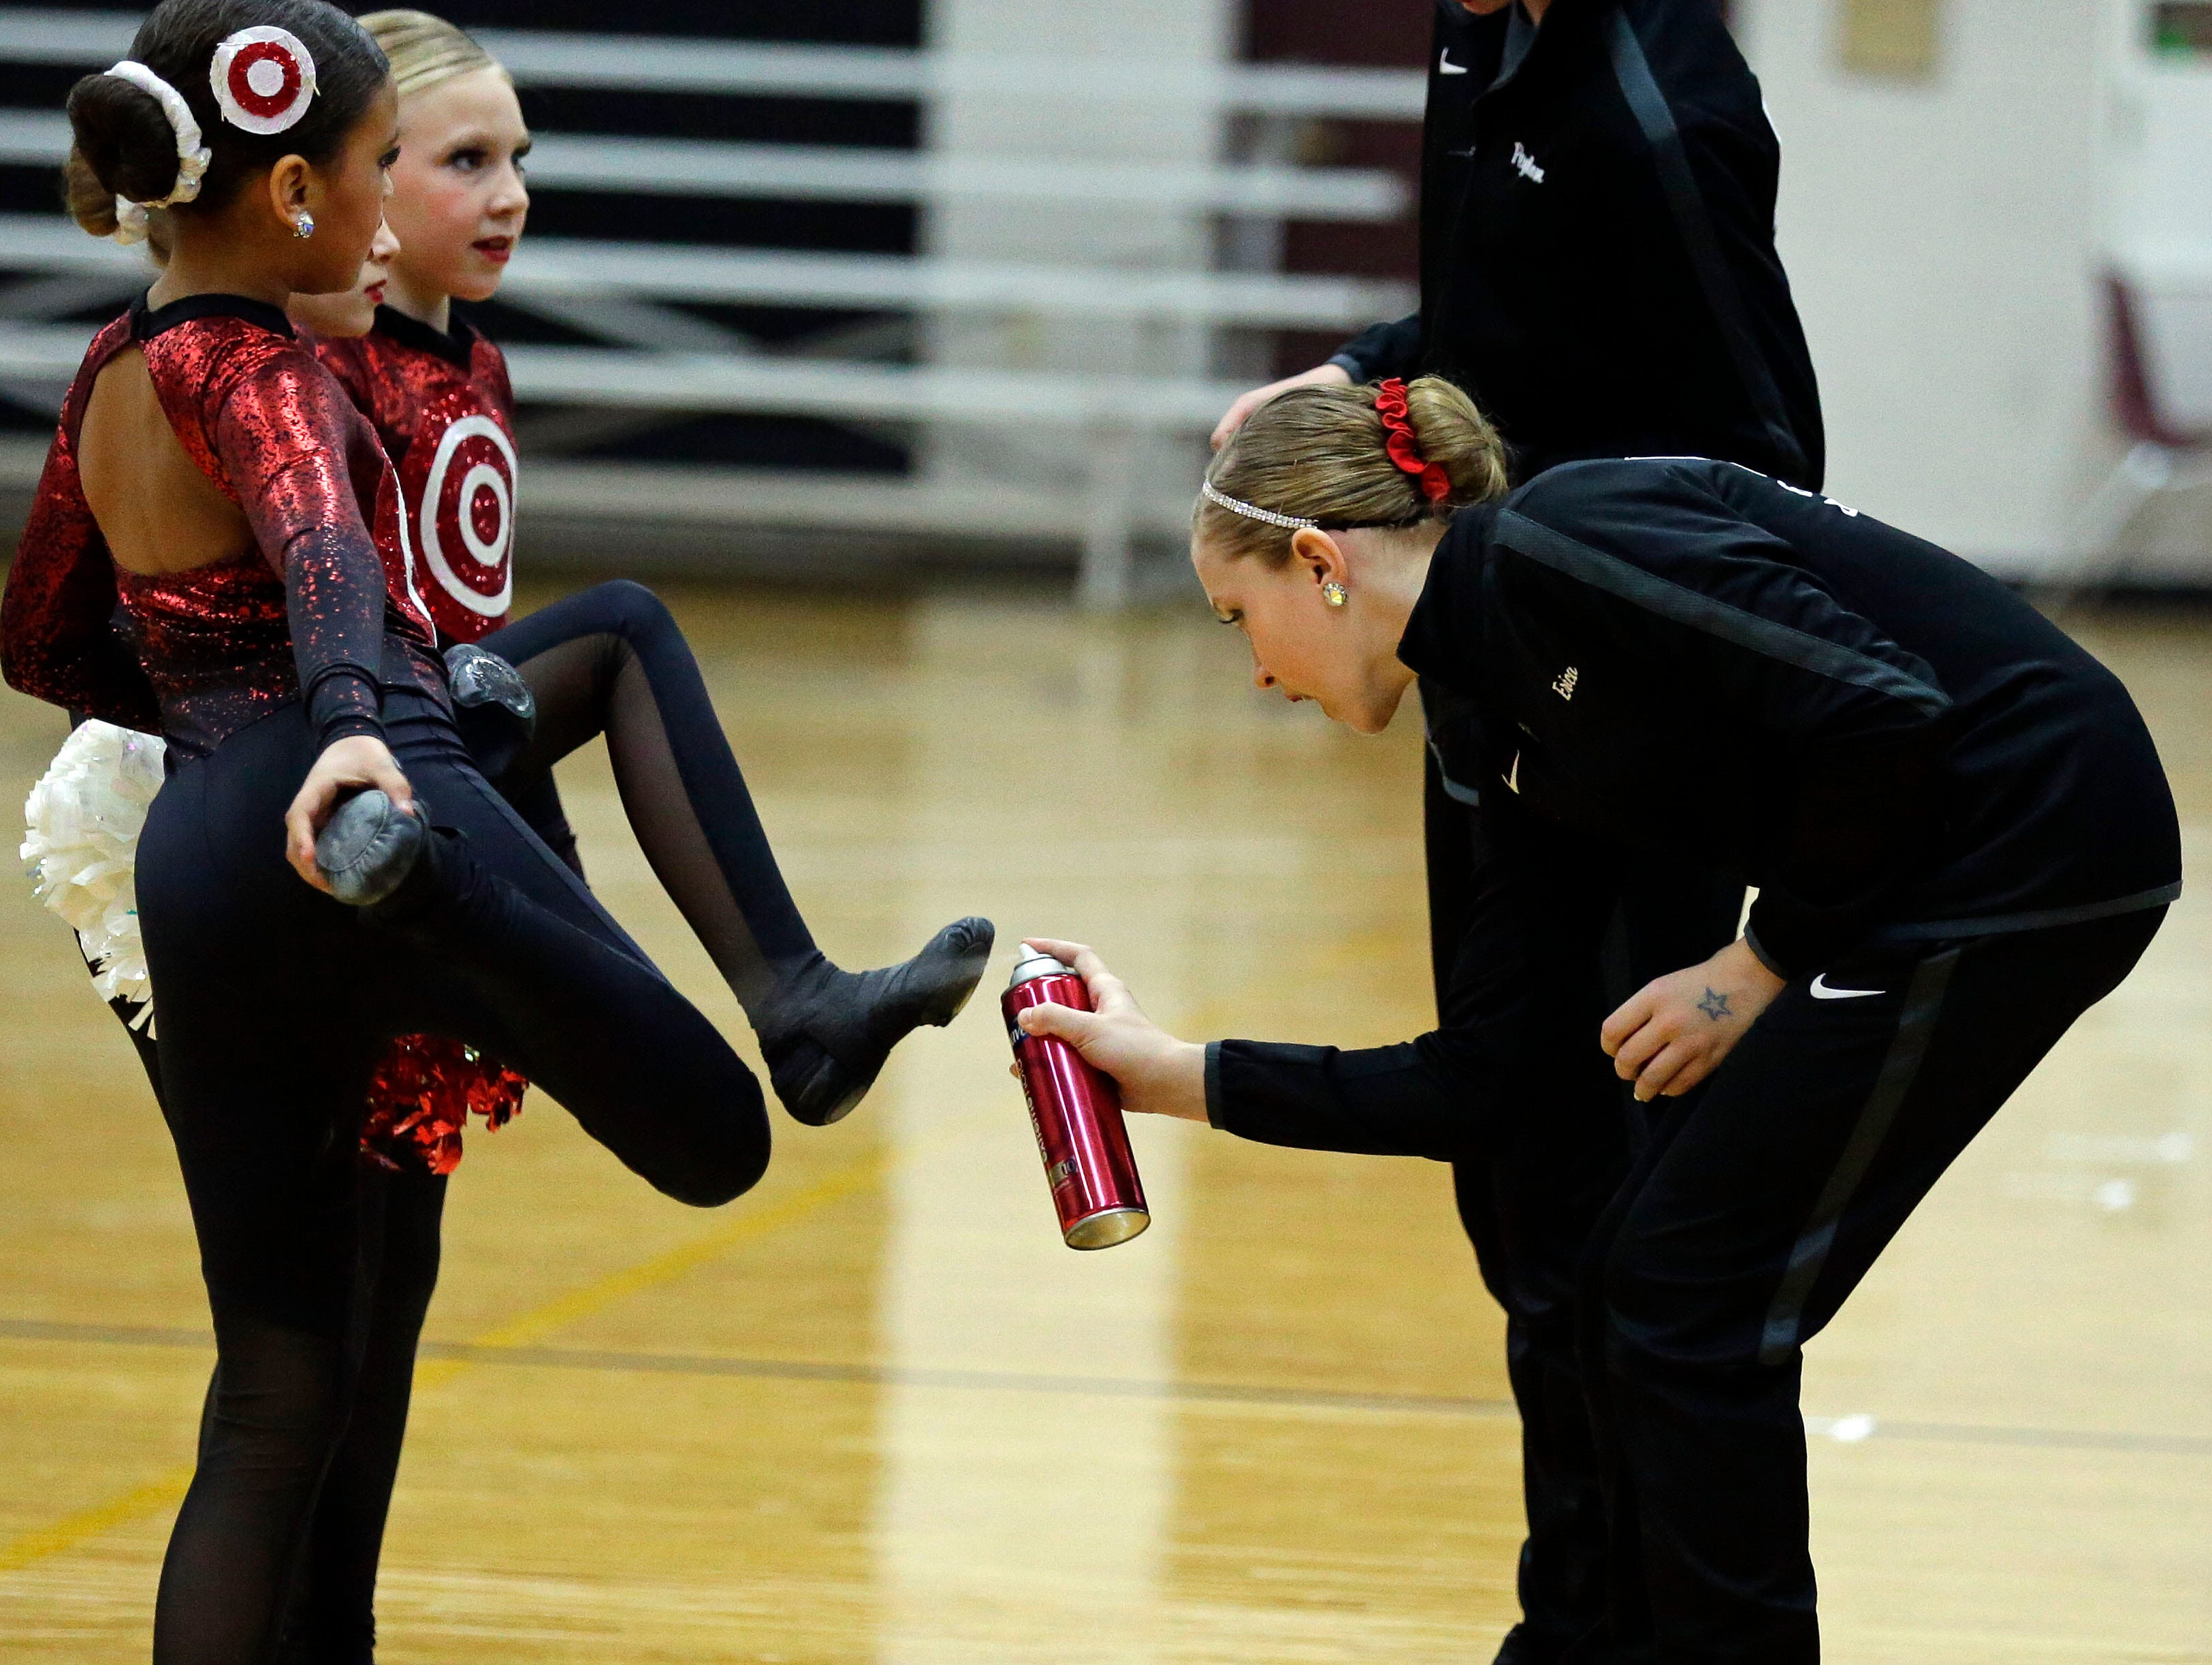 Hairspray helps competitors from sliding as the Lightning Bolt Explosion Cheer and Dance competition takes place Saturday, January 5, 2019, at Appleton North High School in Appleton, Wis.